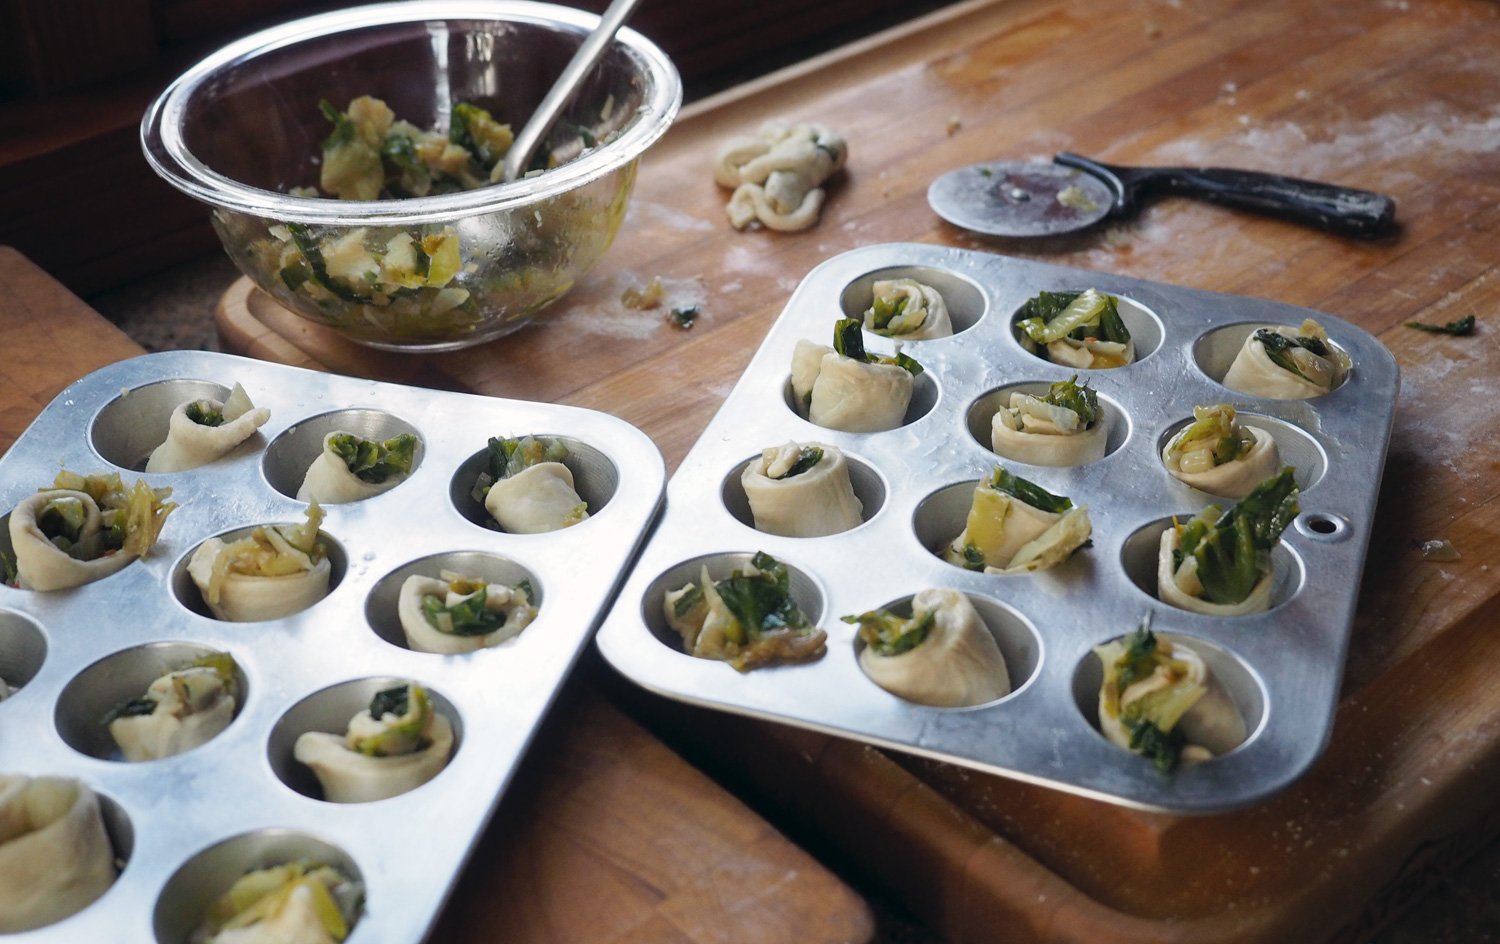 Place your rolled up delights into lightly oiled mini cupcake tins.